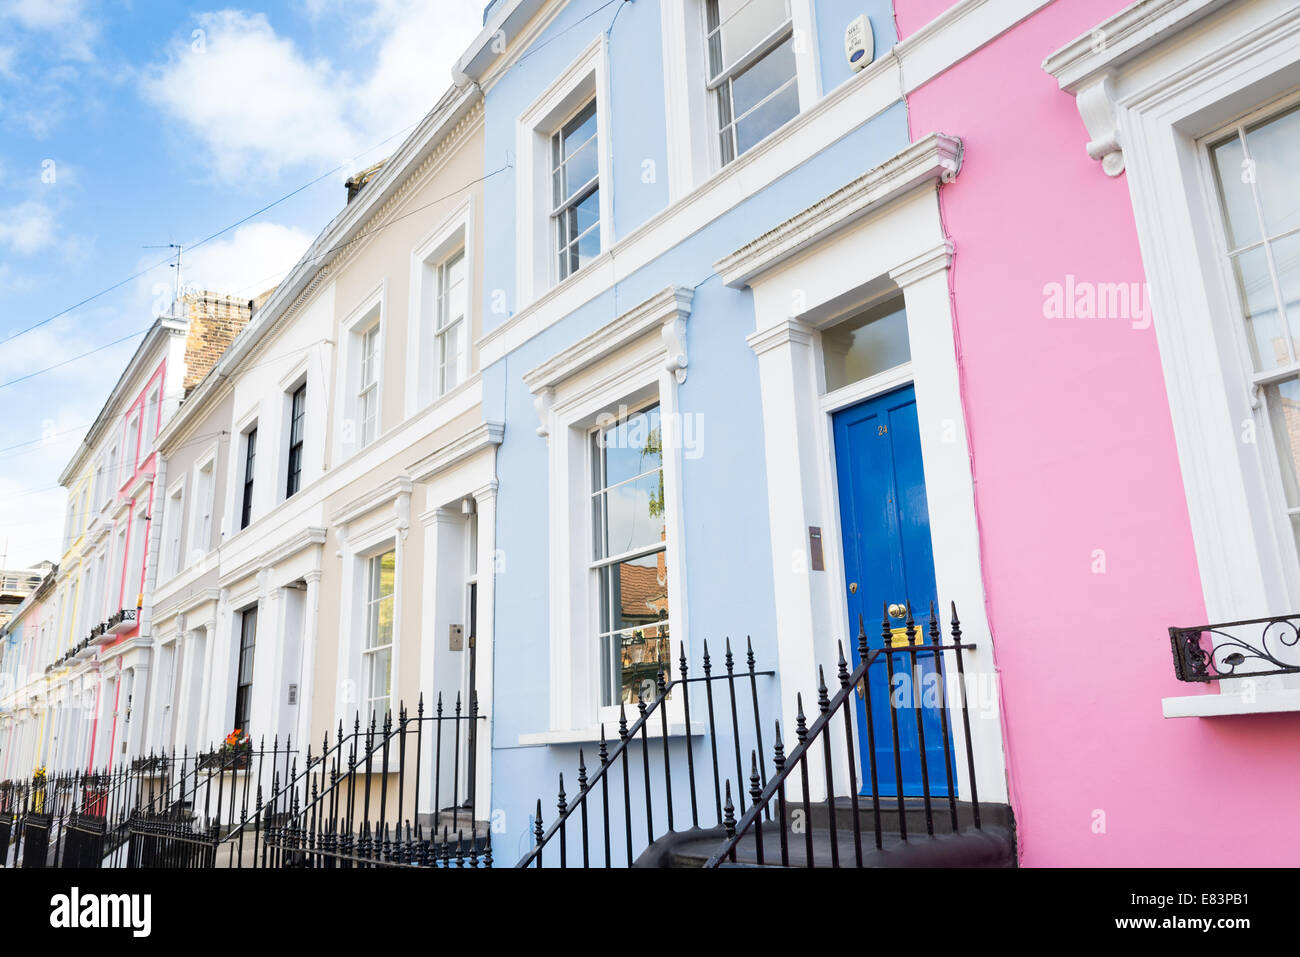 Row of terraced houses in Notting Hill, London, England, UK Stock Photo